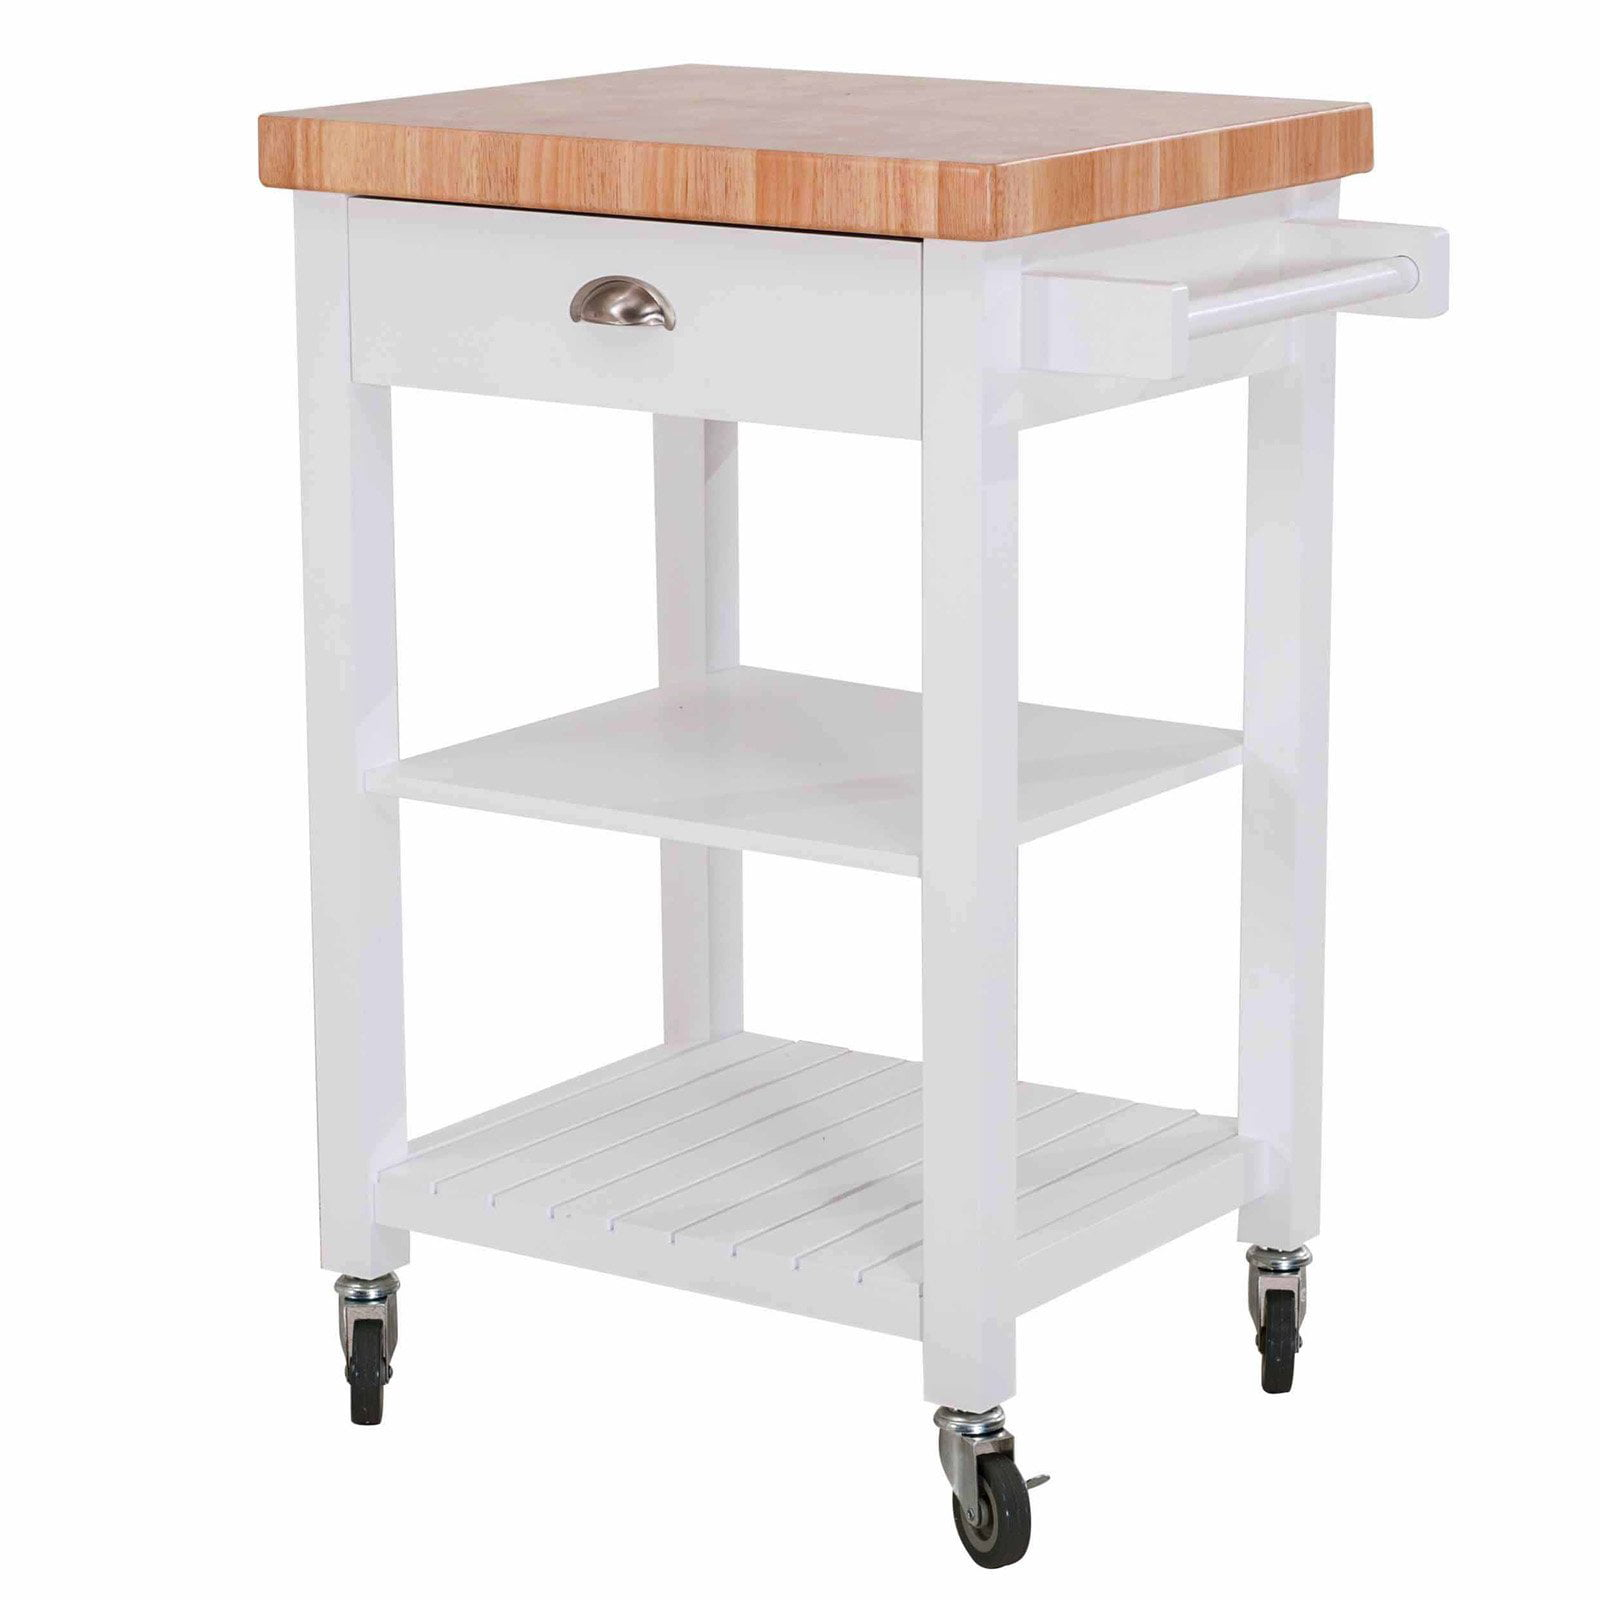 Kitchen Cart With Drawers: SJ Collection Bedford Kitchen Cart On Wheels, Rolling